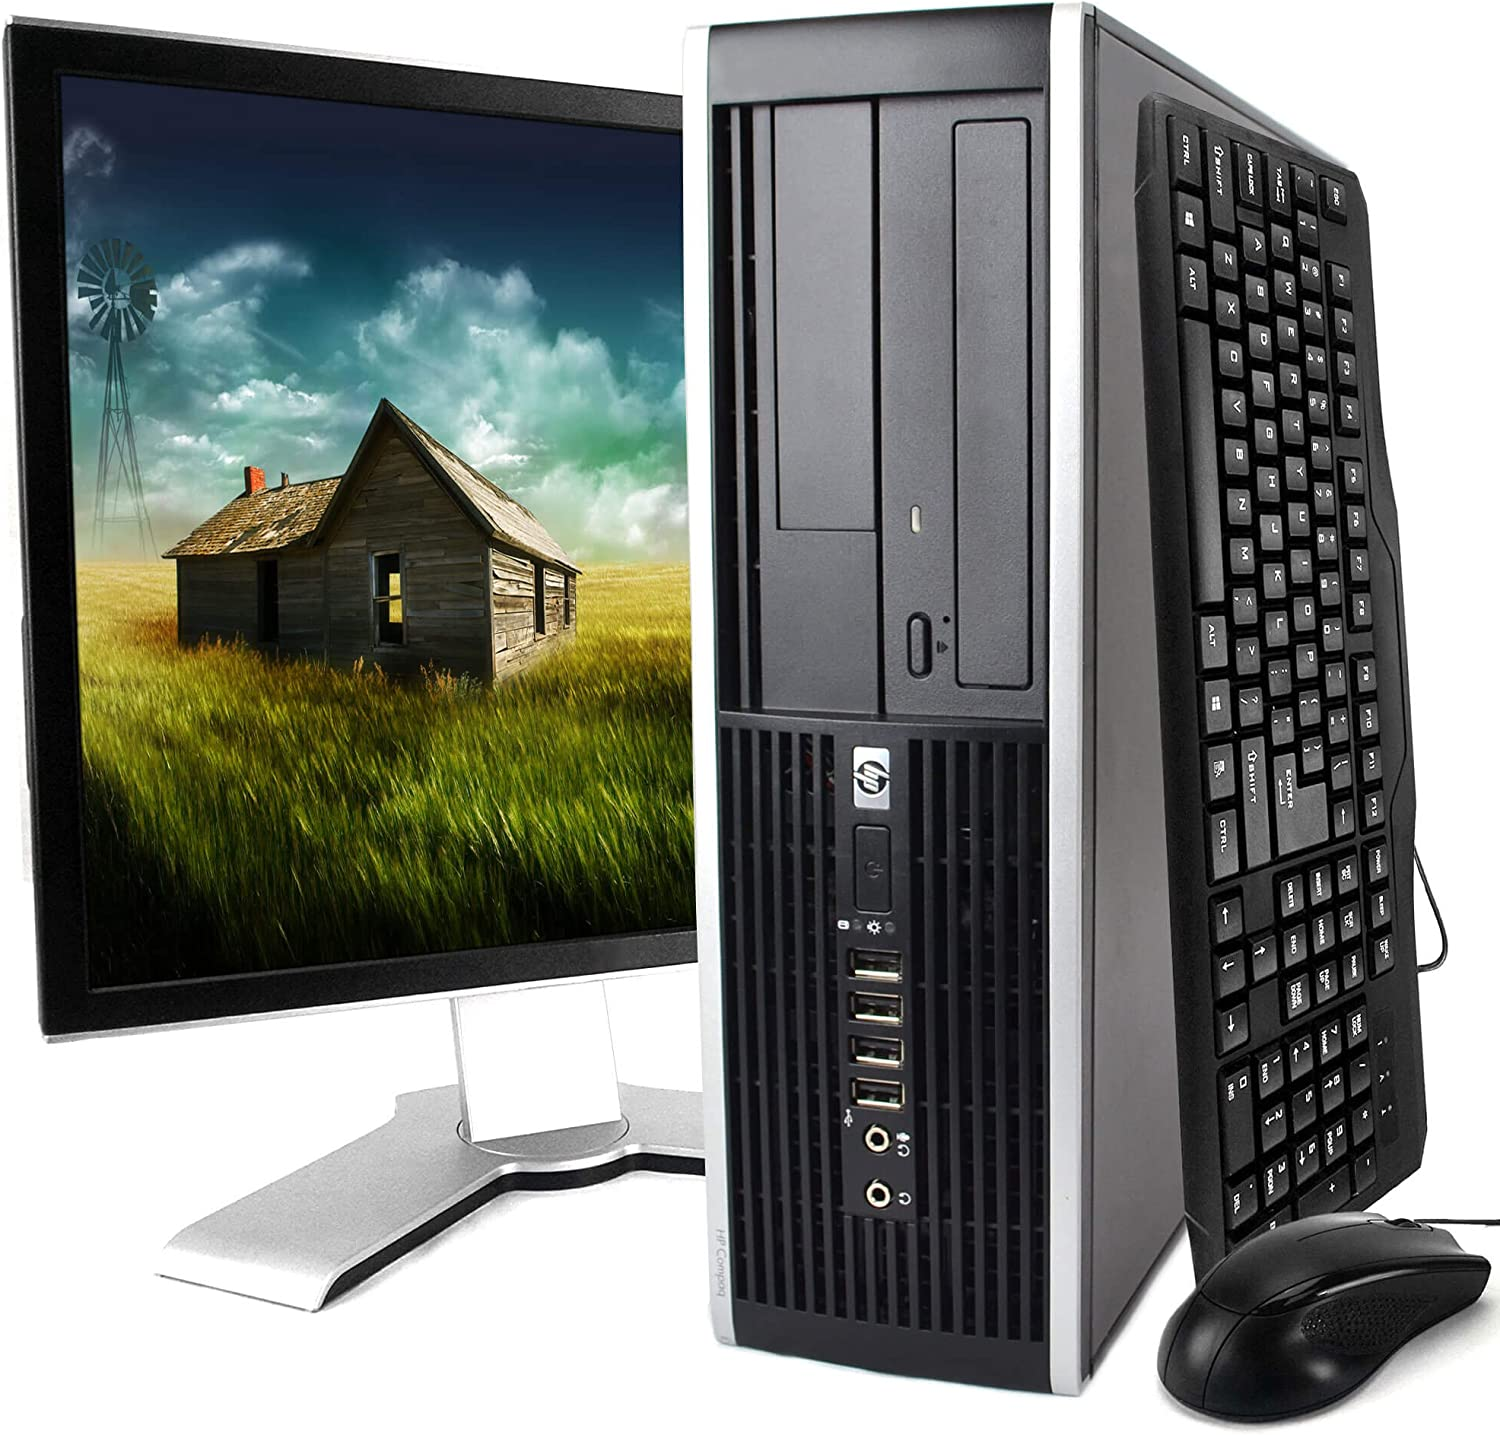 HP Elite 8000 Windows 10 Desktop Computer C2D 3.0 PC 8GB 160GB DVDRW WiFi 19 Inch LCD Monitor - keyboard - Mouse - Power cord